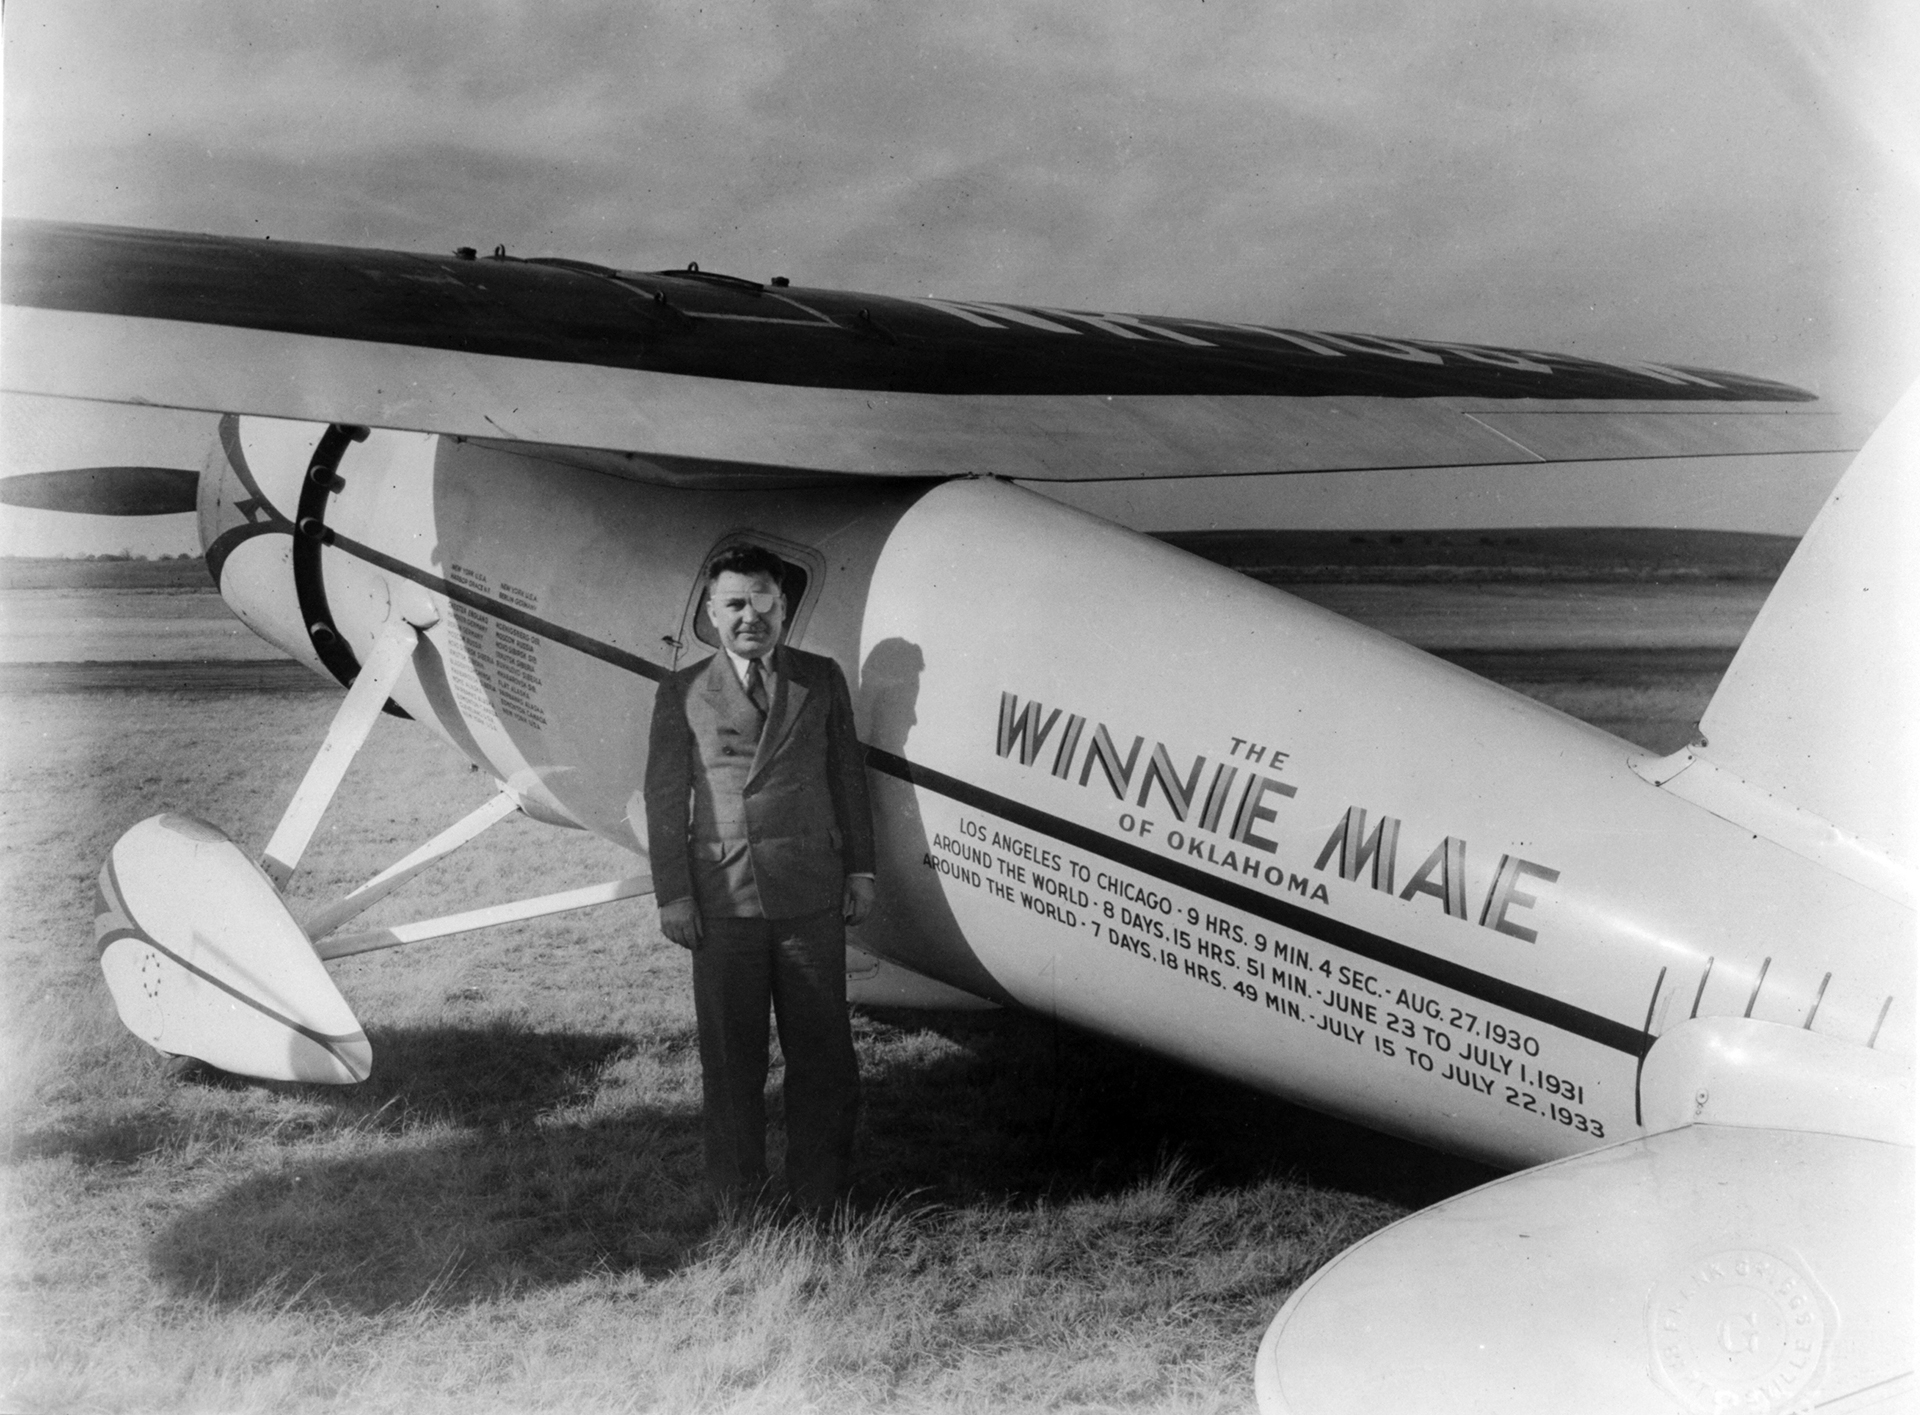 Wiley Post, famous aviator, set around-the-world records in a Vega called the Winnie Mae. (Records: LA to Chicago - 9 hours, 9 minutes, 4 seconds, August 27, 1930; Around the world - 8 days, 15 hours, 51 minutes, June 23 to July 1, 1931; Around the world - 7 days, 18 minutes.)